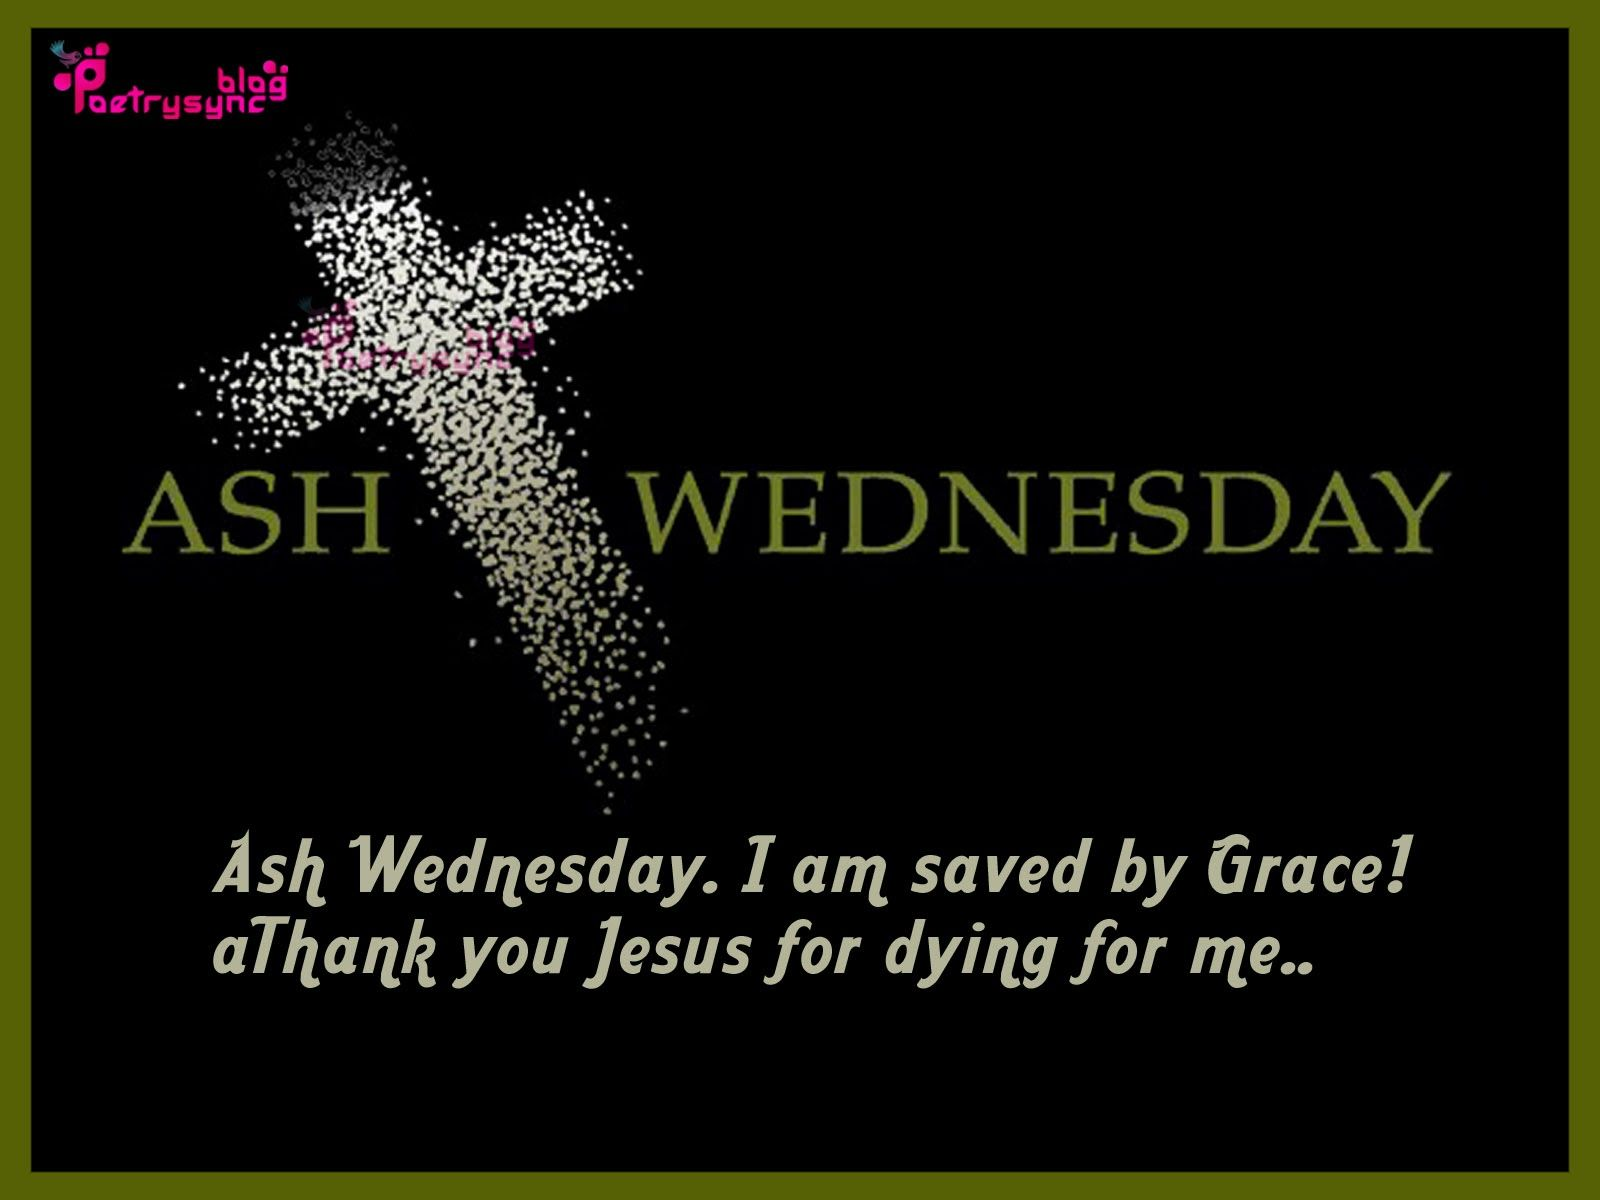 Ash Wednesday Wishes And Greetings Picture And Image With